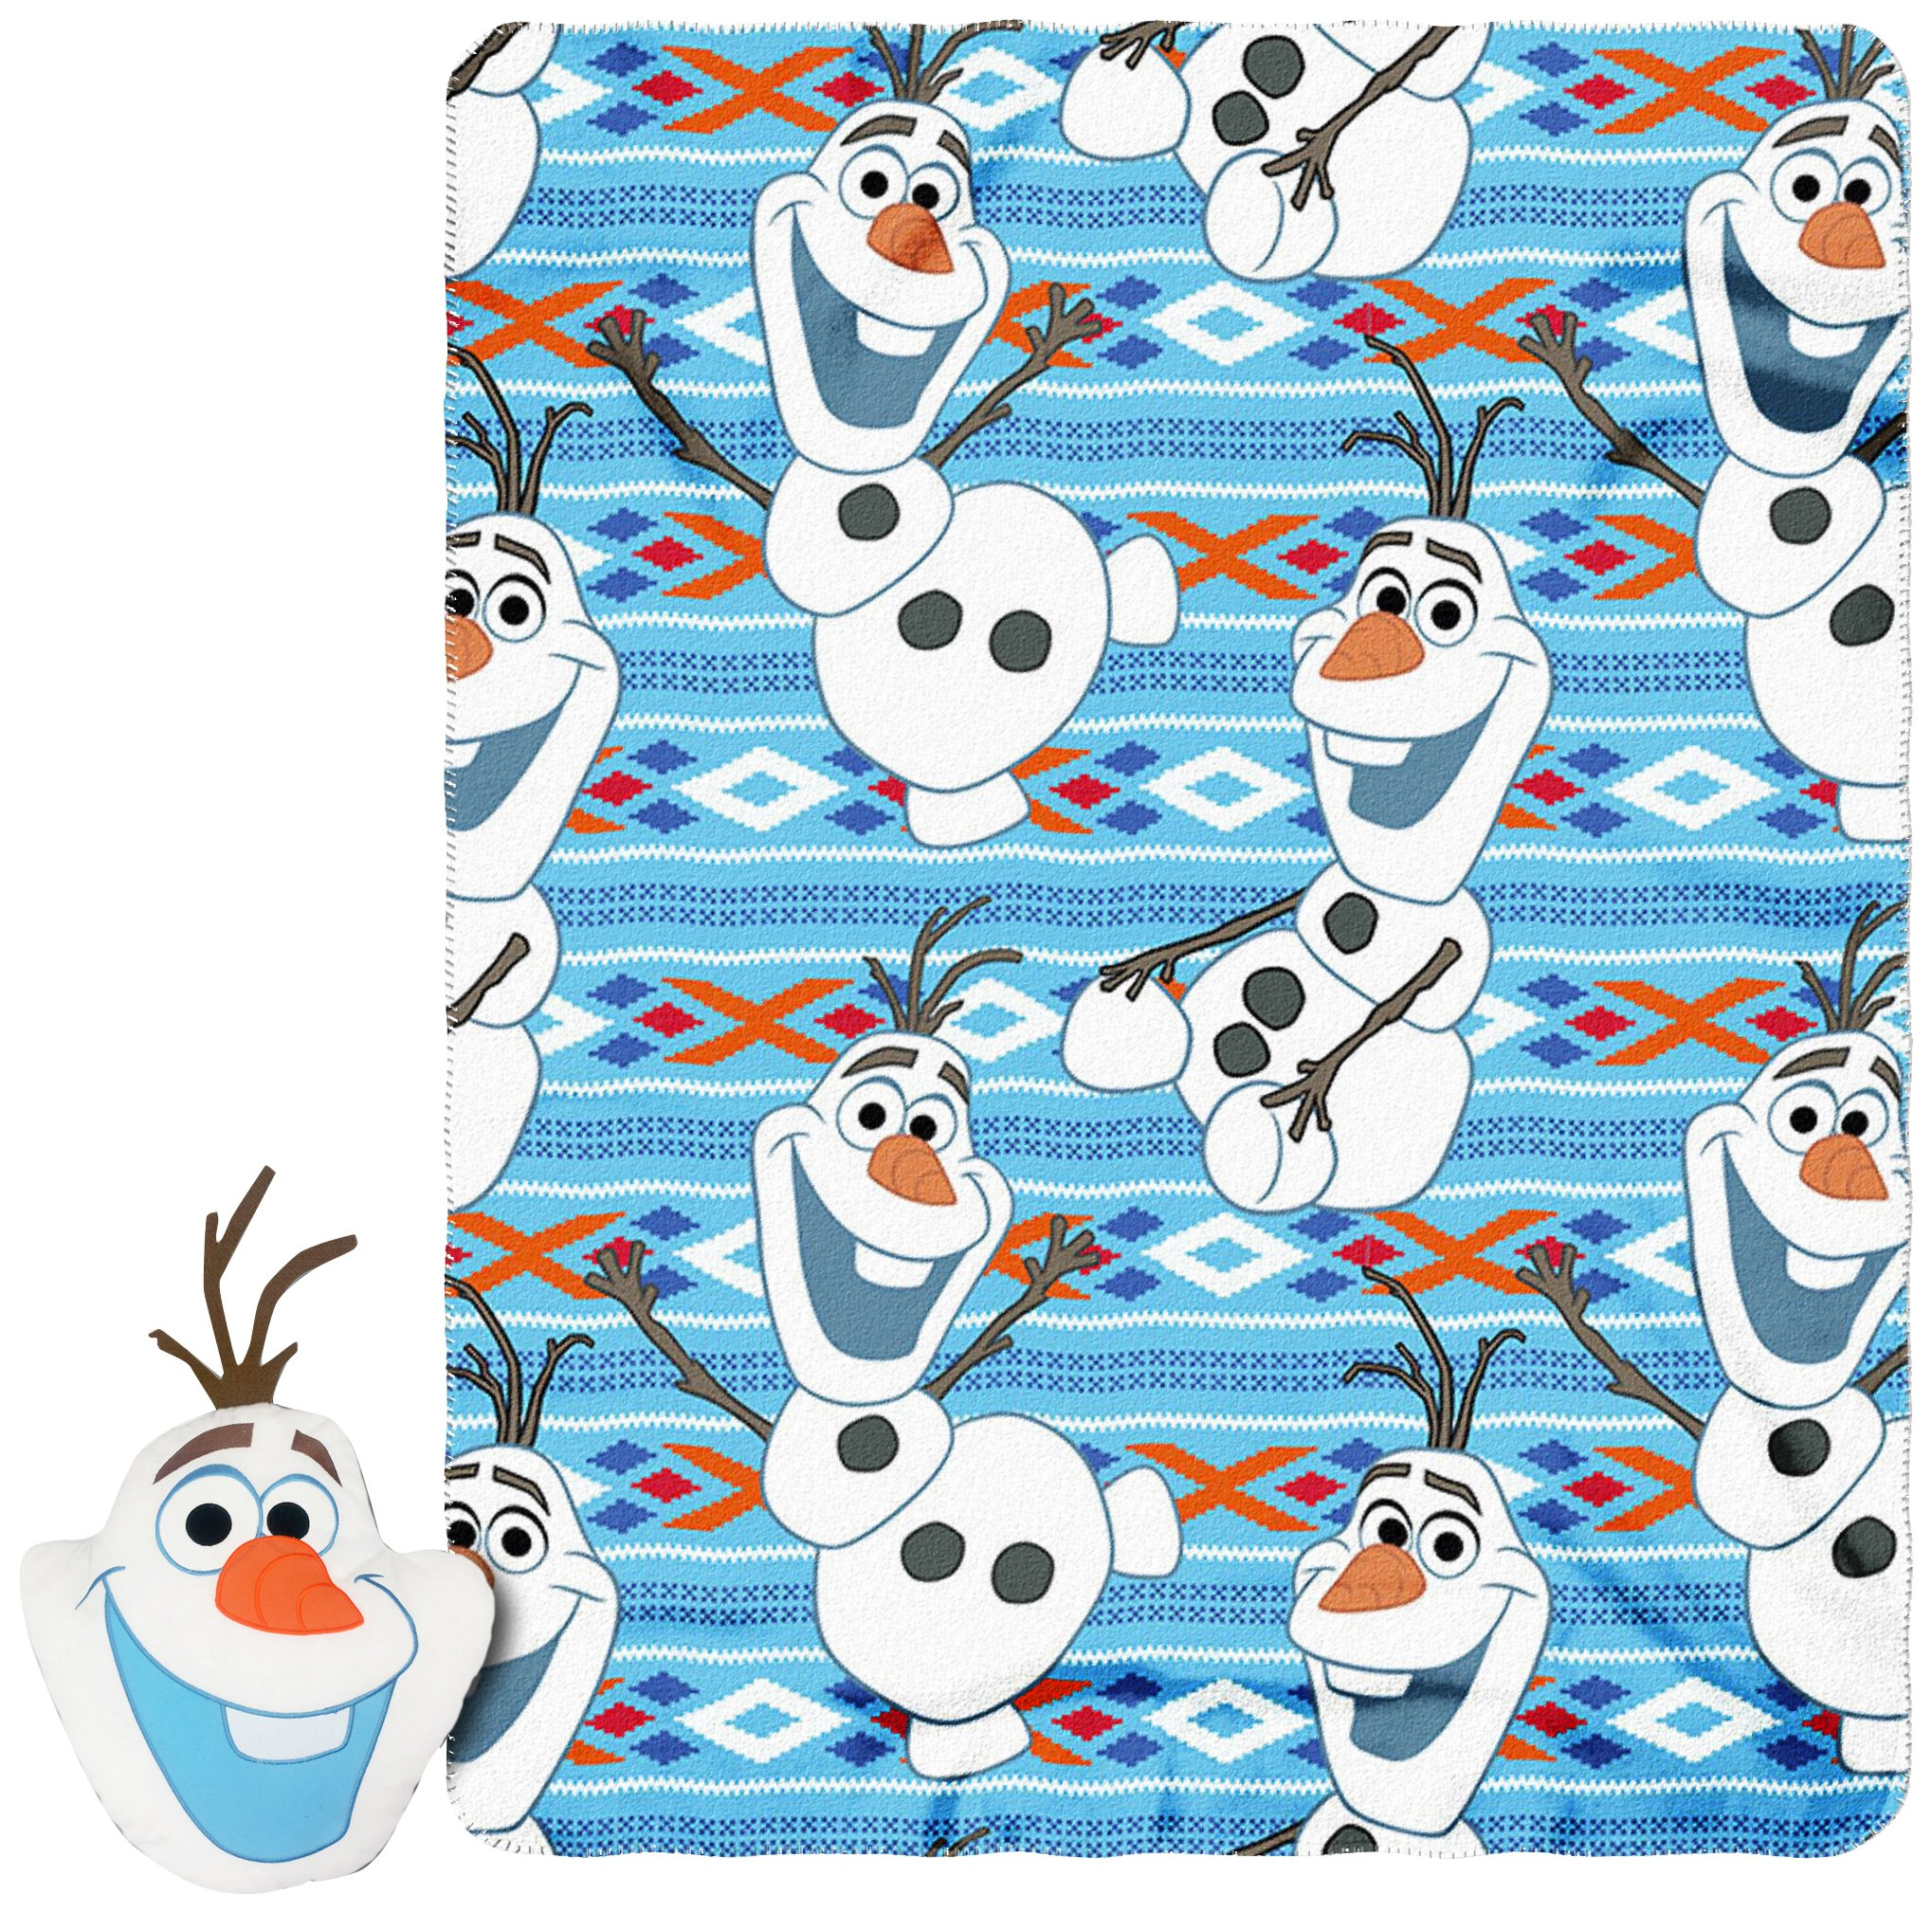 Disney Frozen''''Big Face Olaf'' Character Pillow and Fleece Throw Blanket Set, 40'' x 50'', Multi Color by Disney